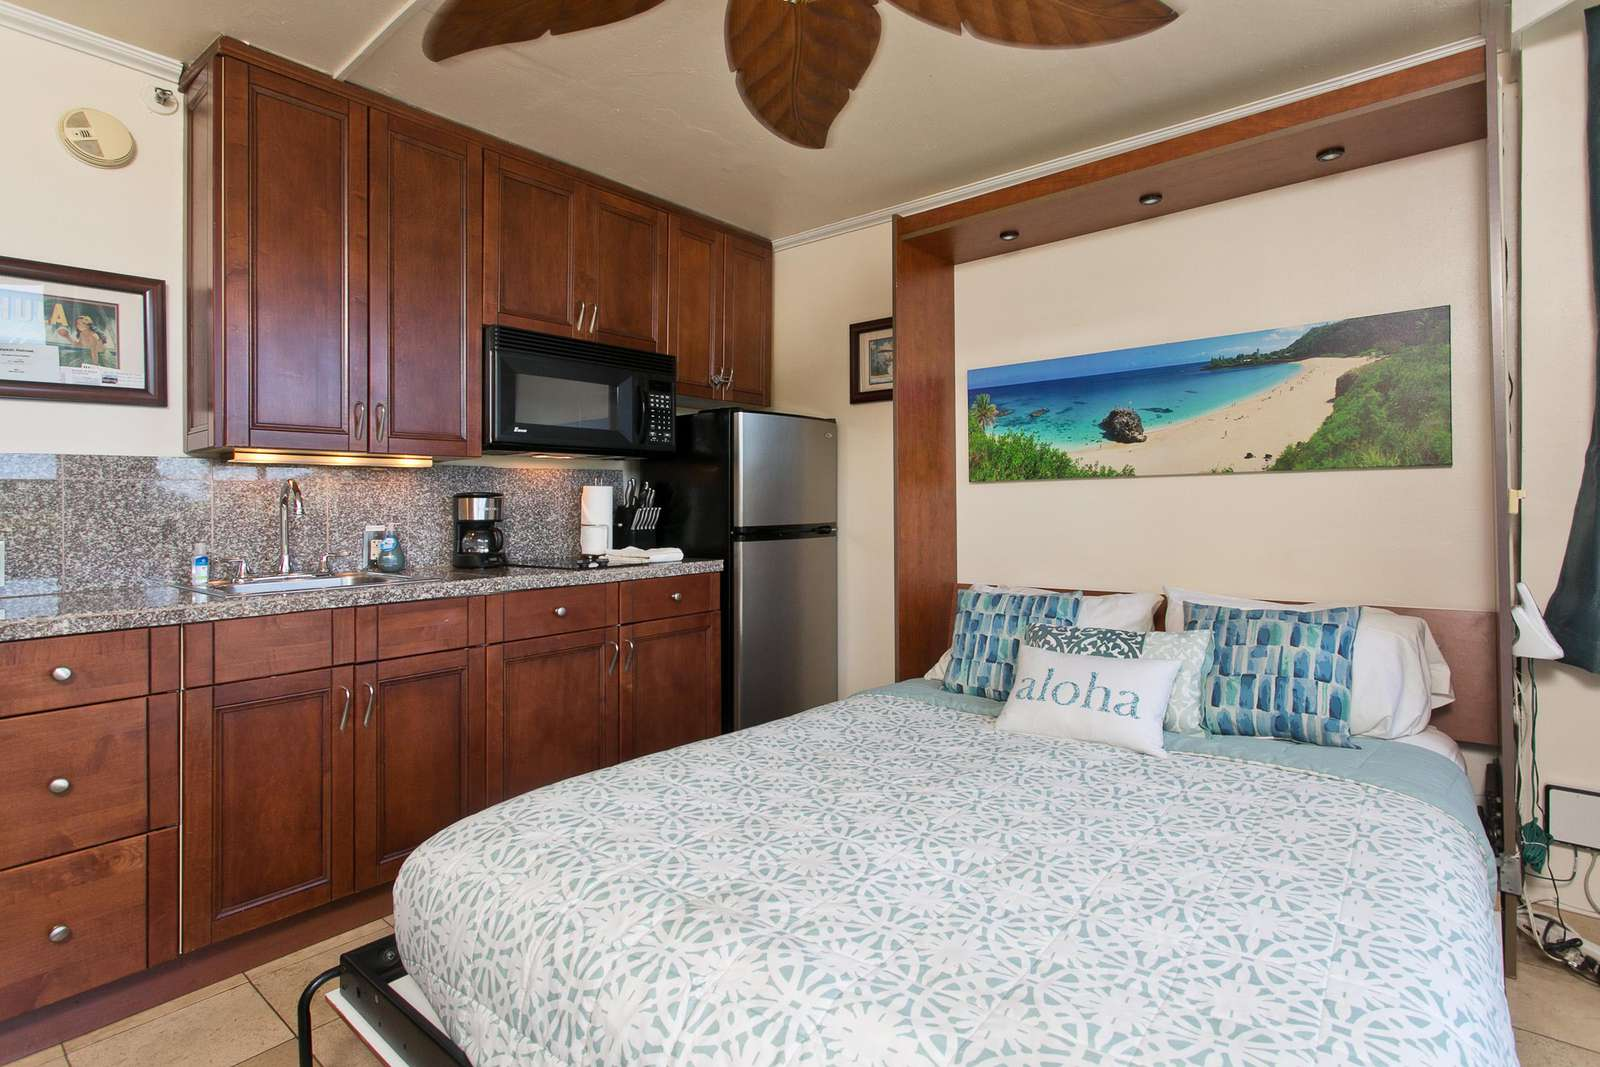 Microwave, Med Fridge and Queen bed